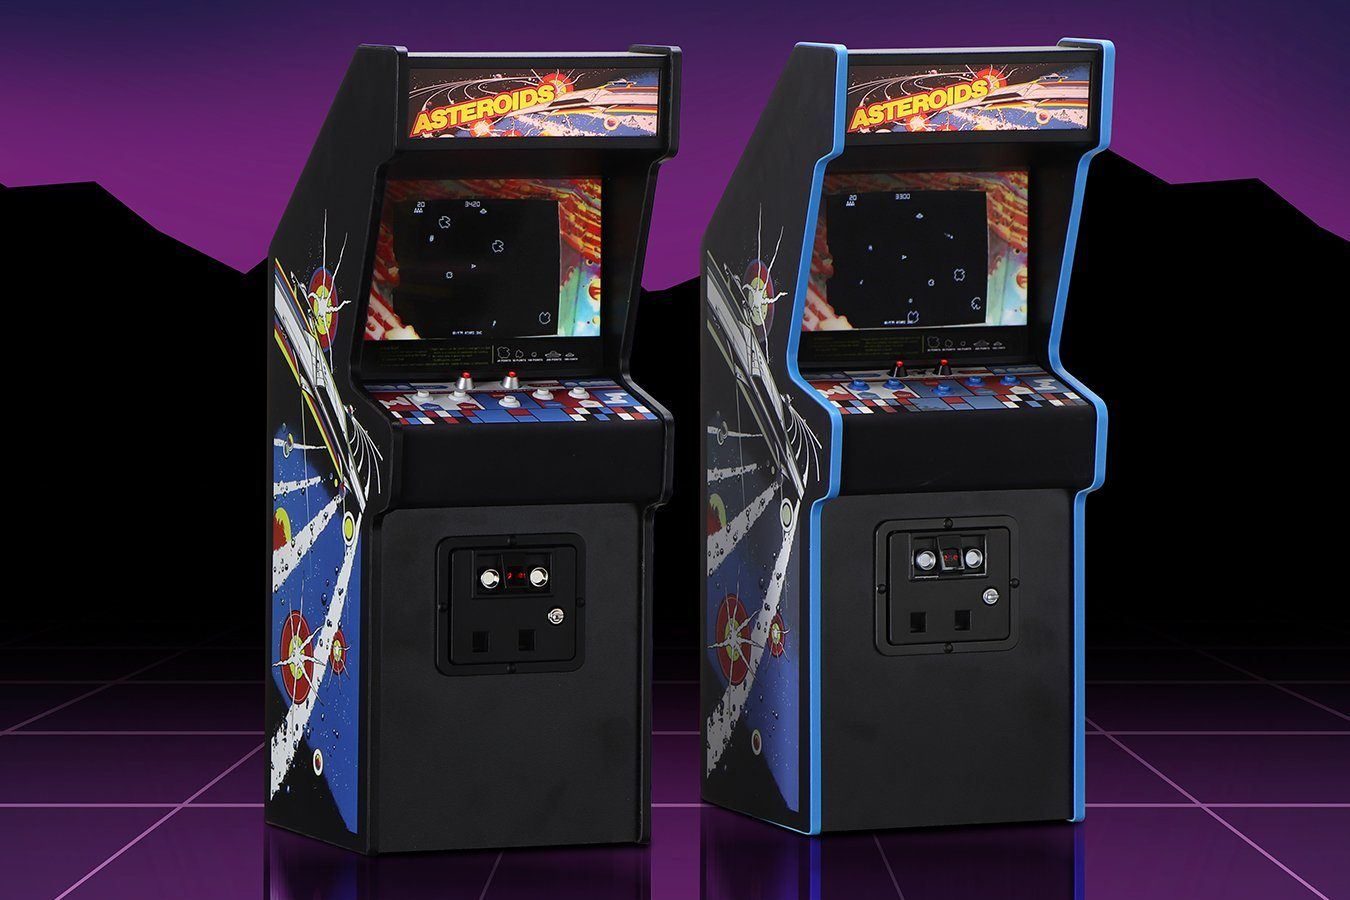 Asteroids X RepliCade Fully Playable, Limited Edition 12-Inch Replica Now Available For Pre-Order